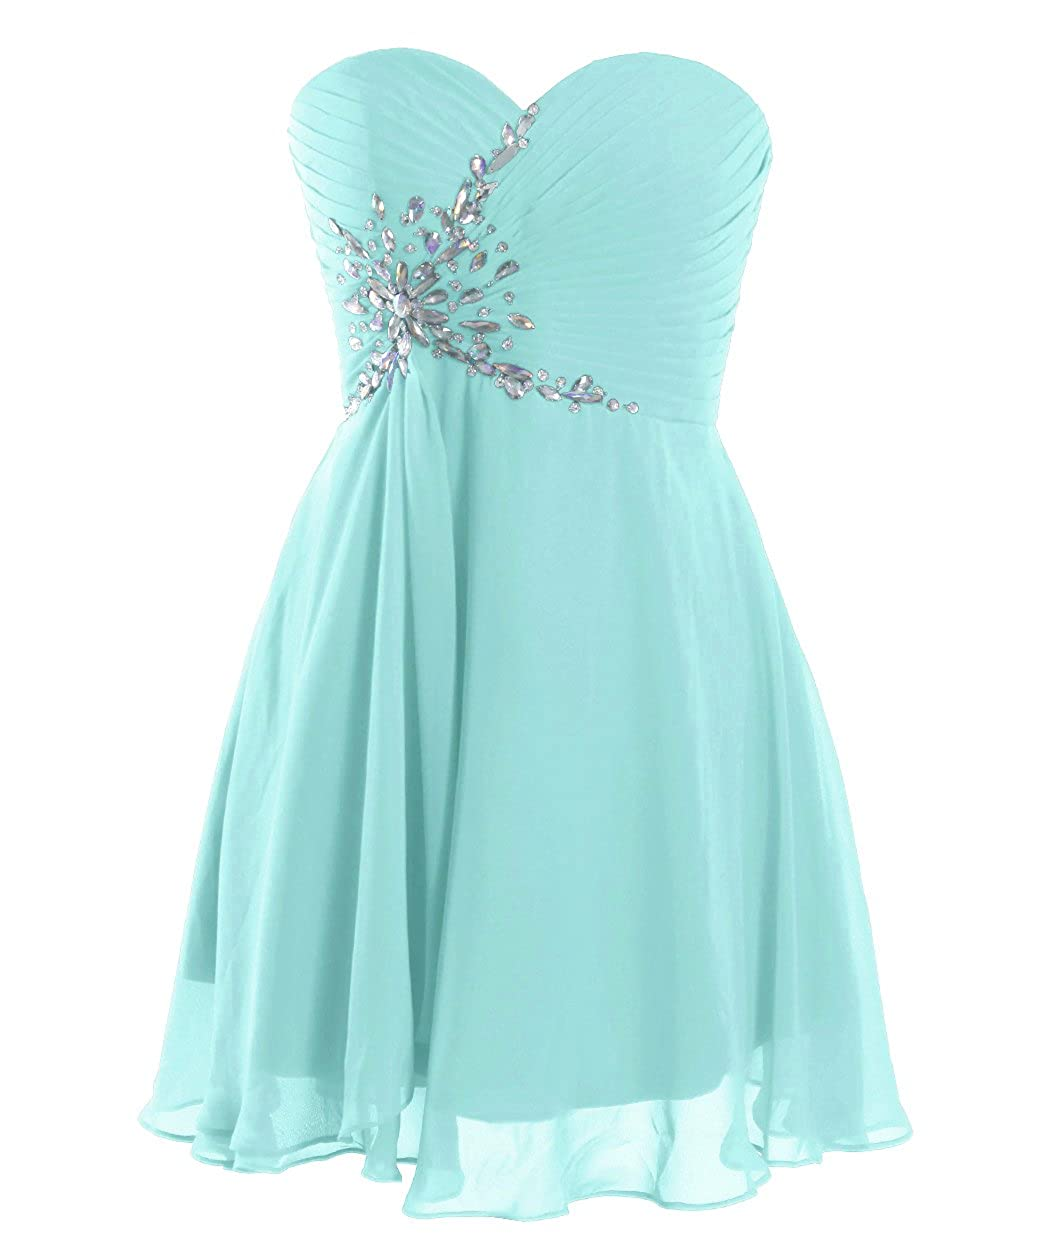 FAIRY COUPLE Short Strapless Sweetheart Prom Dress Crystal D0371